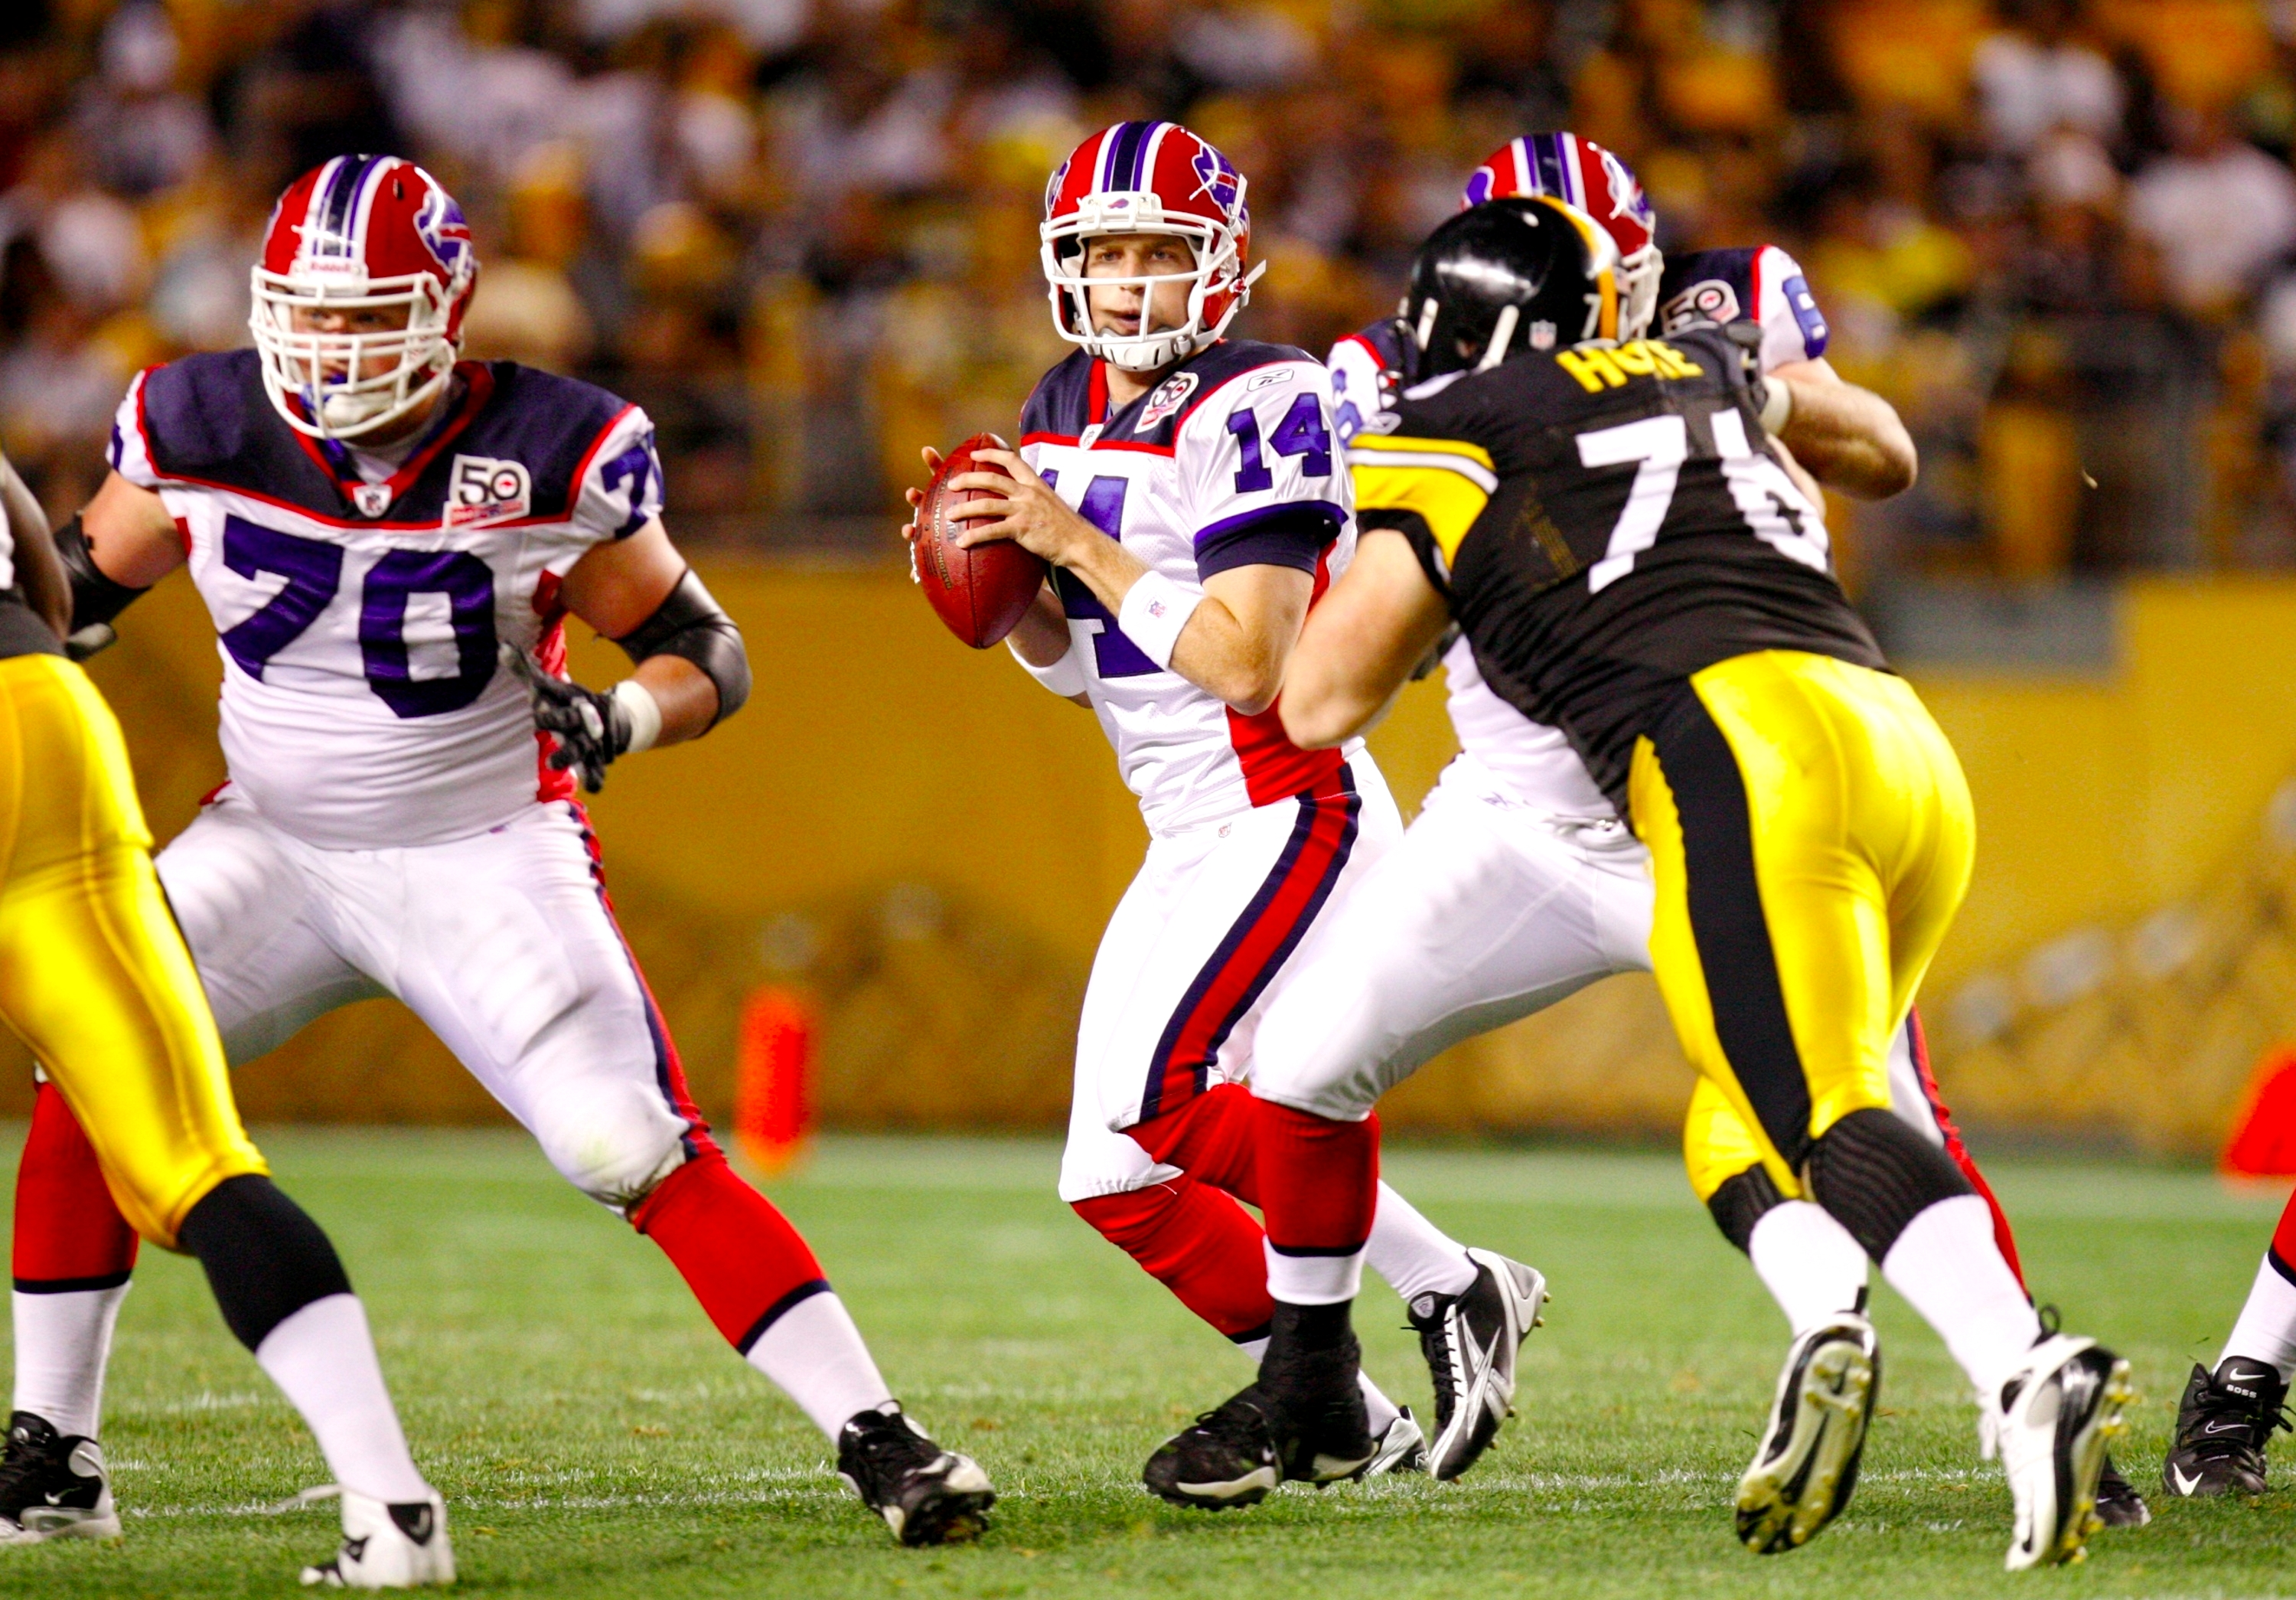 PITTSBURGH - AUGUST 29: Quarterback Ryan Fitzpatrick #14 of the Buffalo Bills looks to pass downfield in the third quarter during the game against the Pittsburgh Steelers at Heinz Field on August 29, 2009 in Pittsburgh, Pennsylvania. (Photo by Gregory Sha